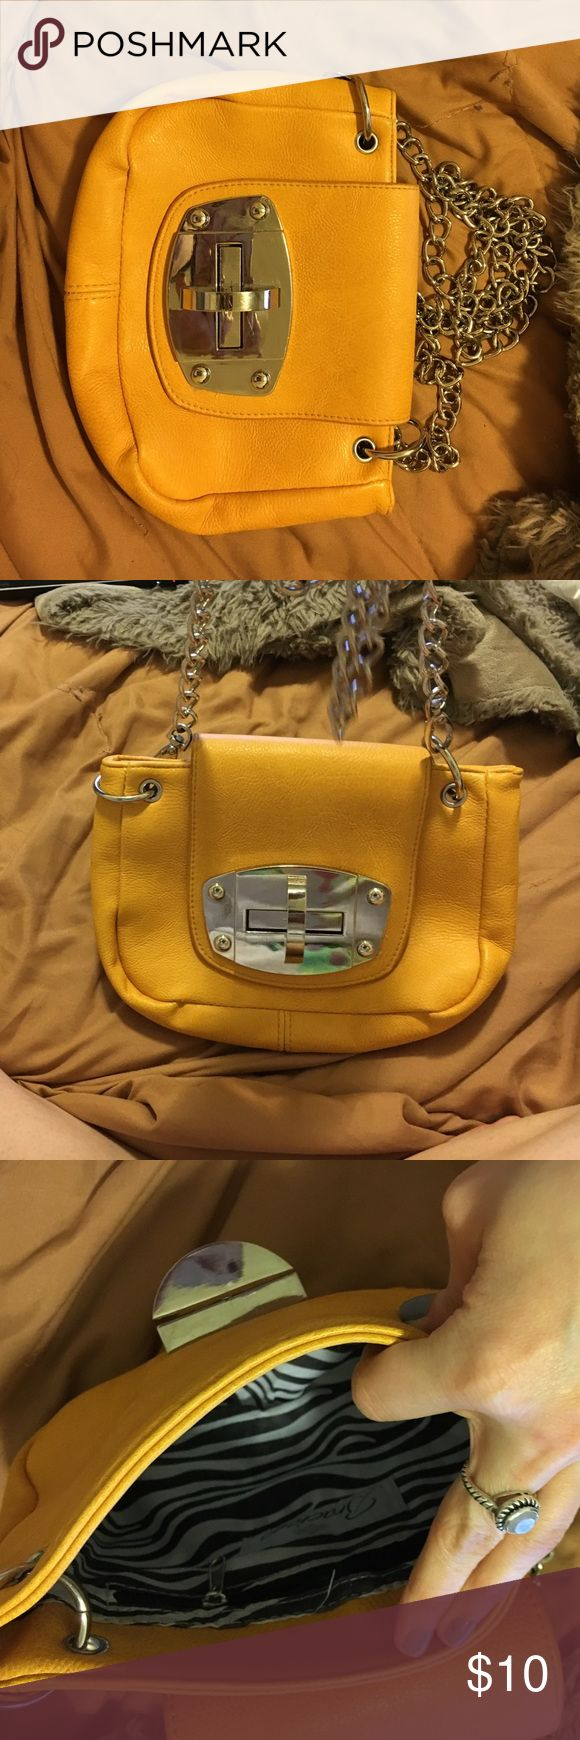 "Tj max cross body purse Yellow with silver accent chain. L 9.5"" Depth : 6"" Bags Crossbody Bags"